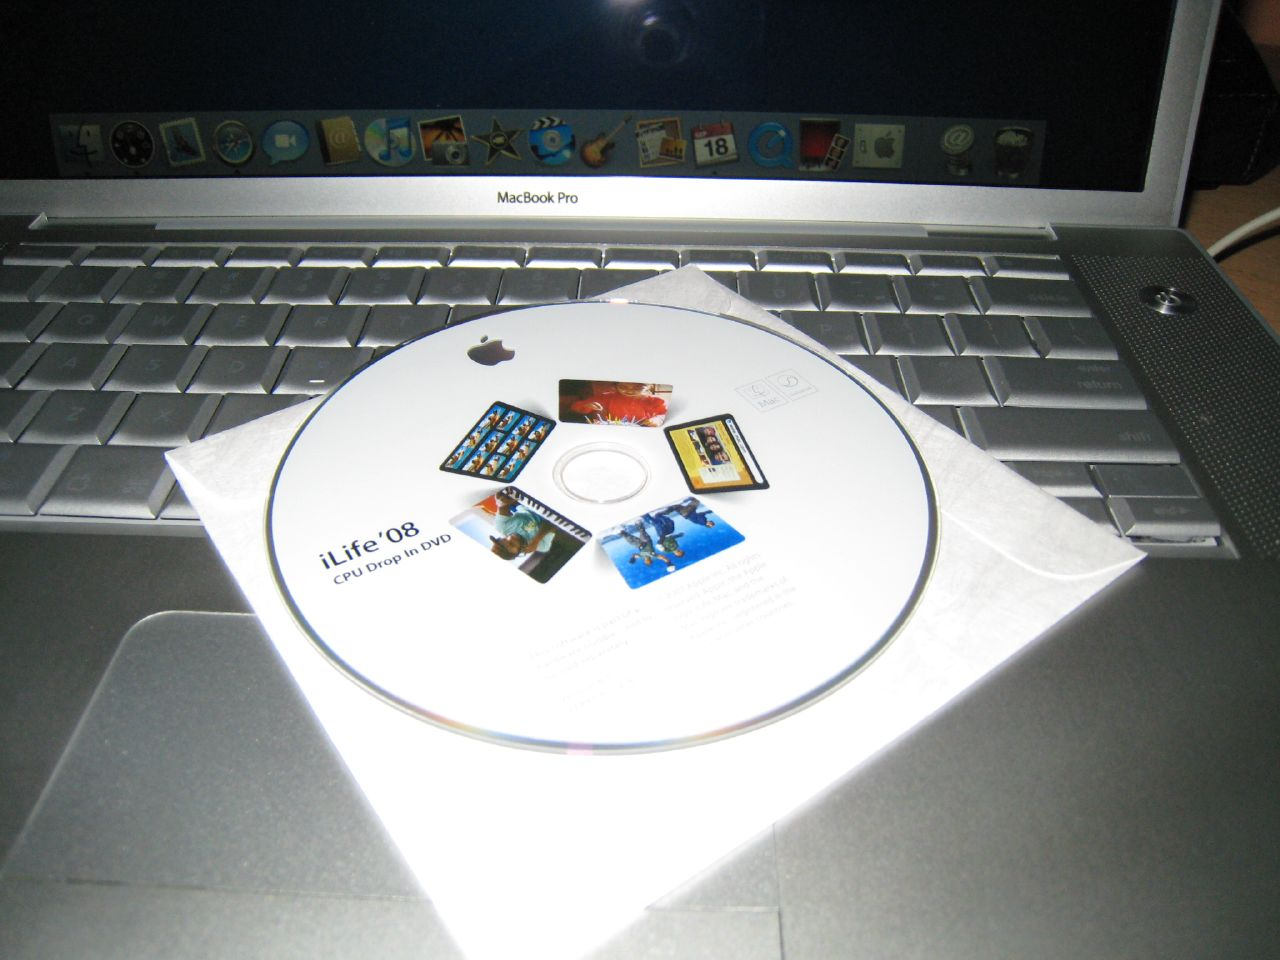 macbook pro come with iLife 08